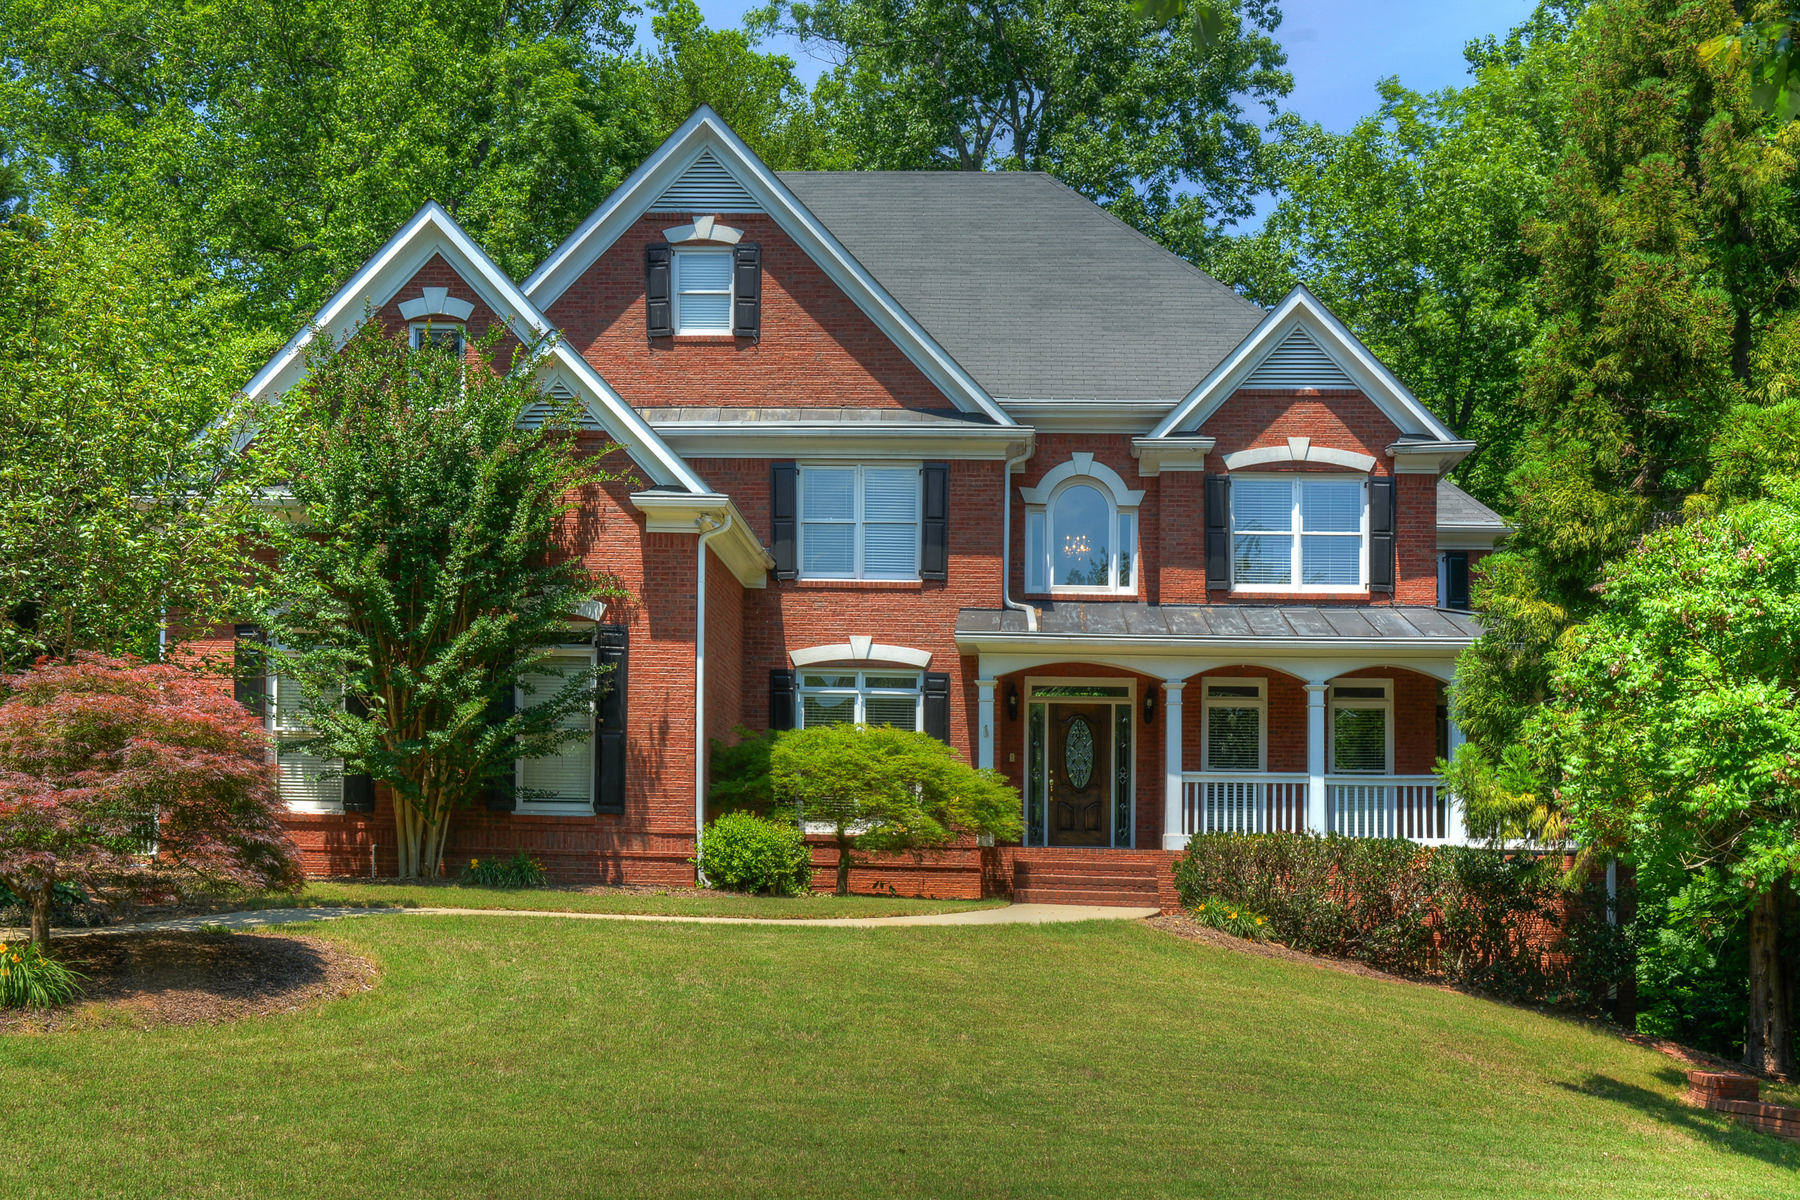 Частный односемейный дом для того Продажа на Brick Beauty With Southern Charm In Sought After Sugar Mill 300 Falling Creek Bend Johns Creek, Джорджия, 30097 Соединенные Штаты